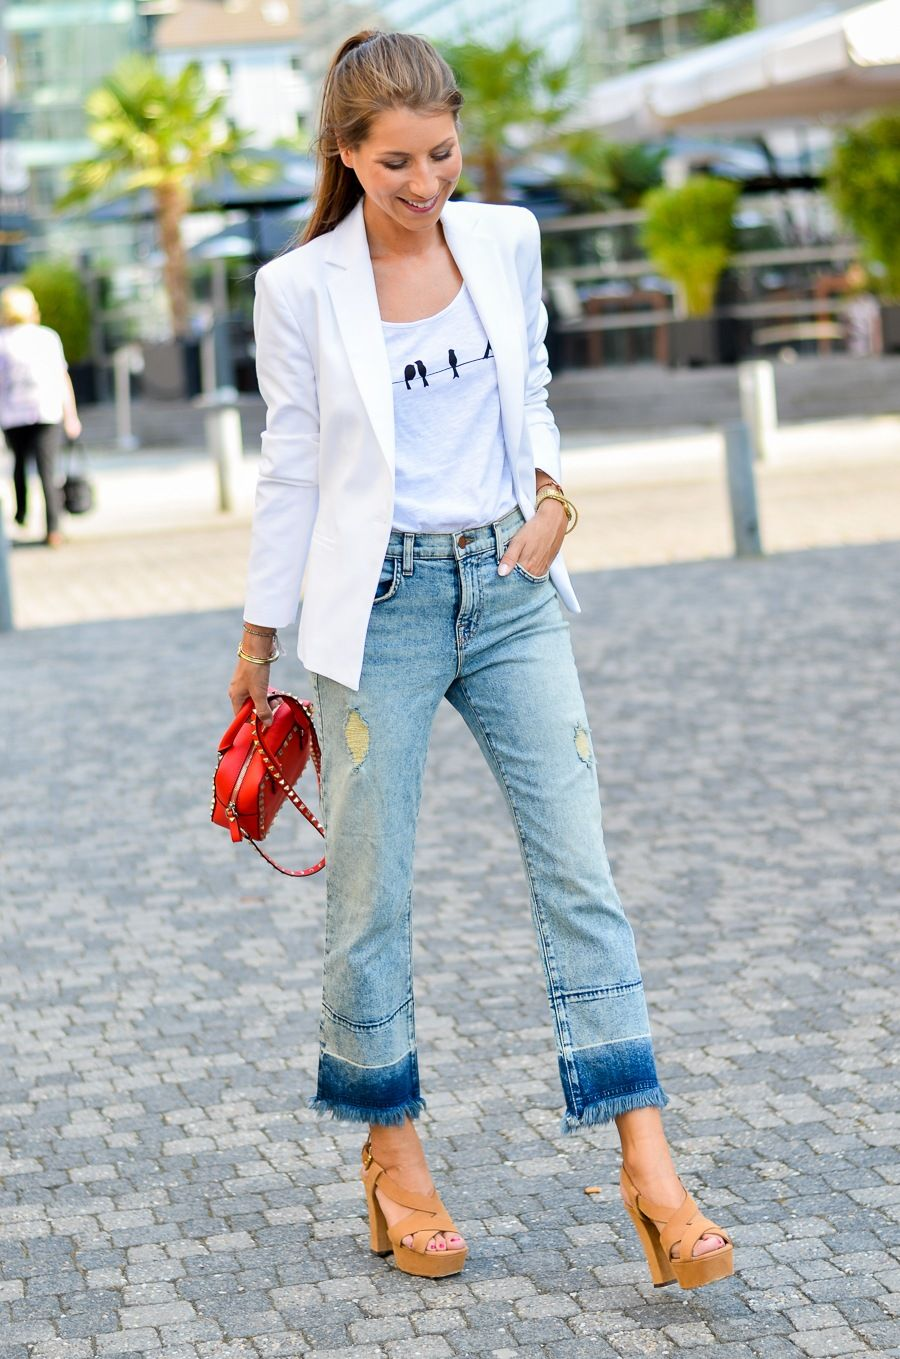 2211483c Cropped jeans flared fringes outfit how to wear blazer white platform  sandals red bag brand fashion blogger